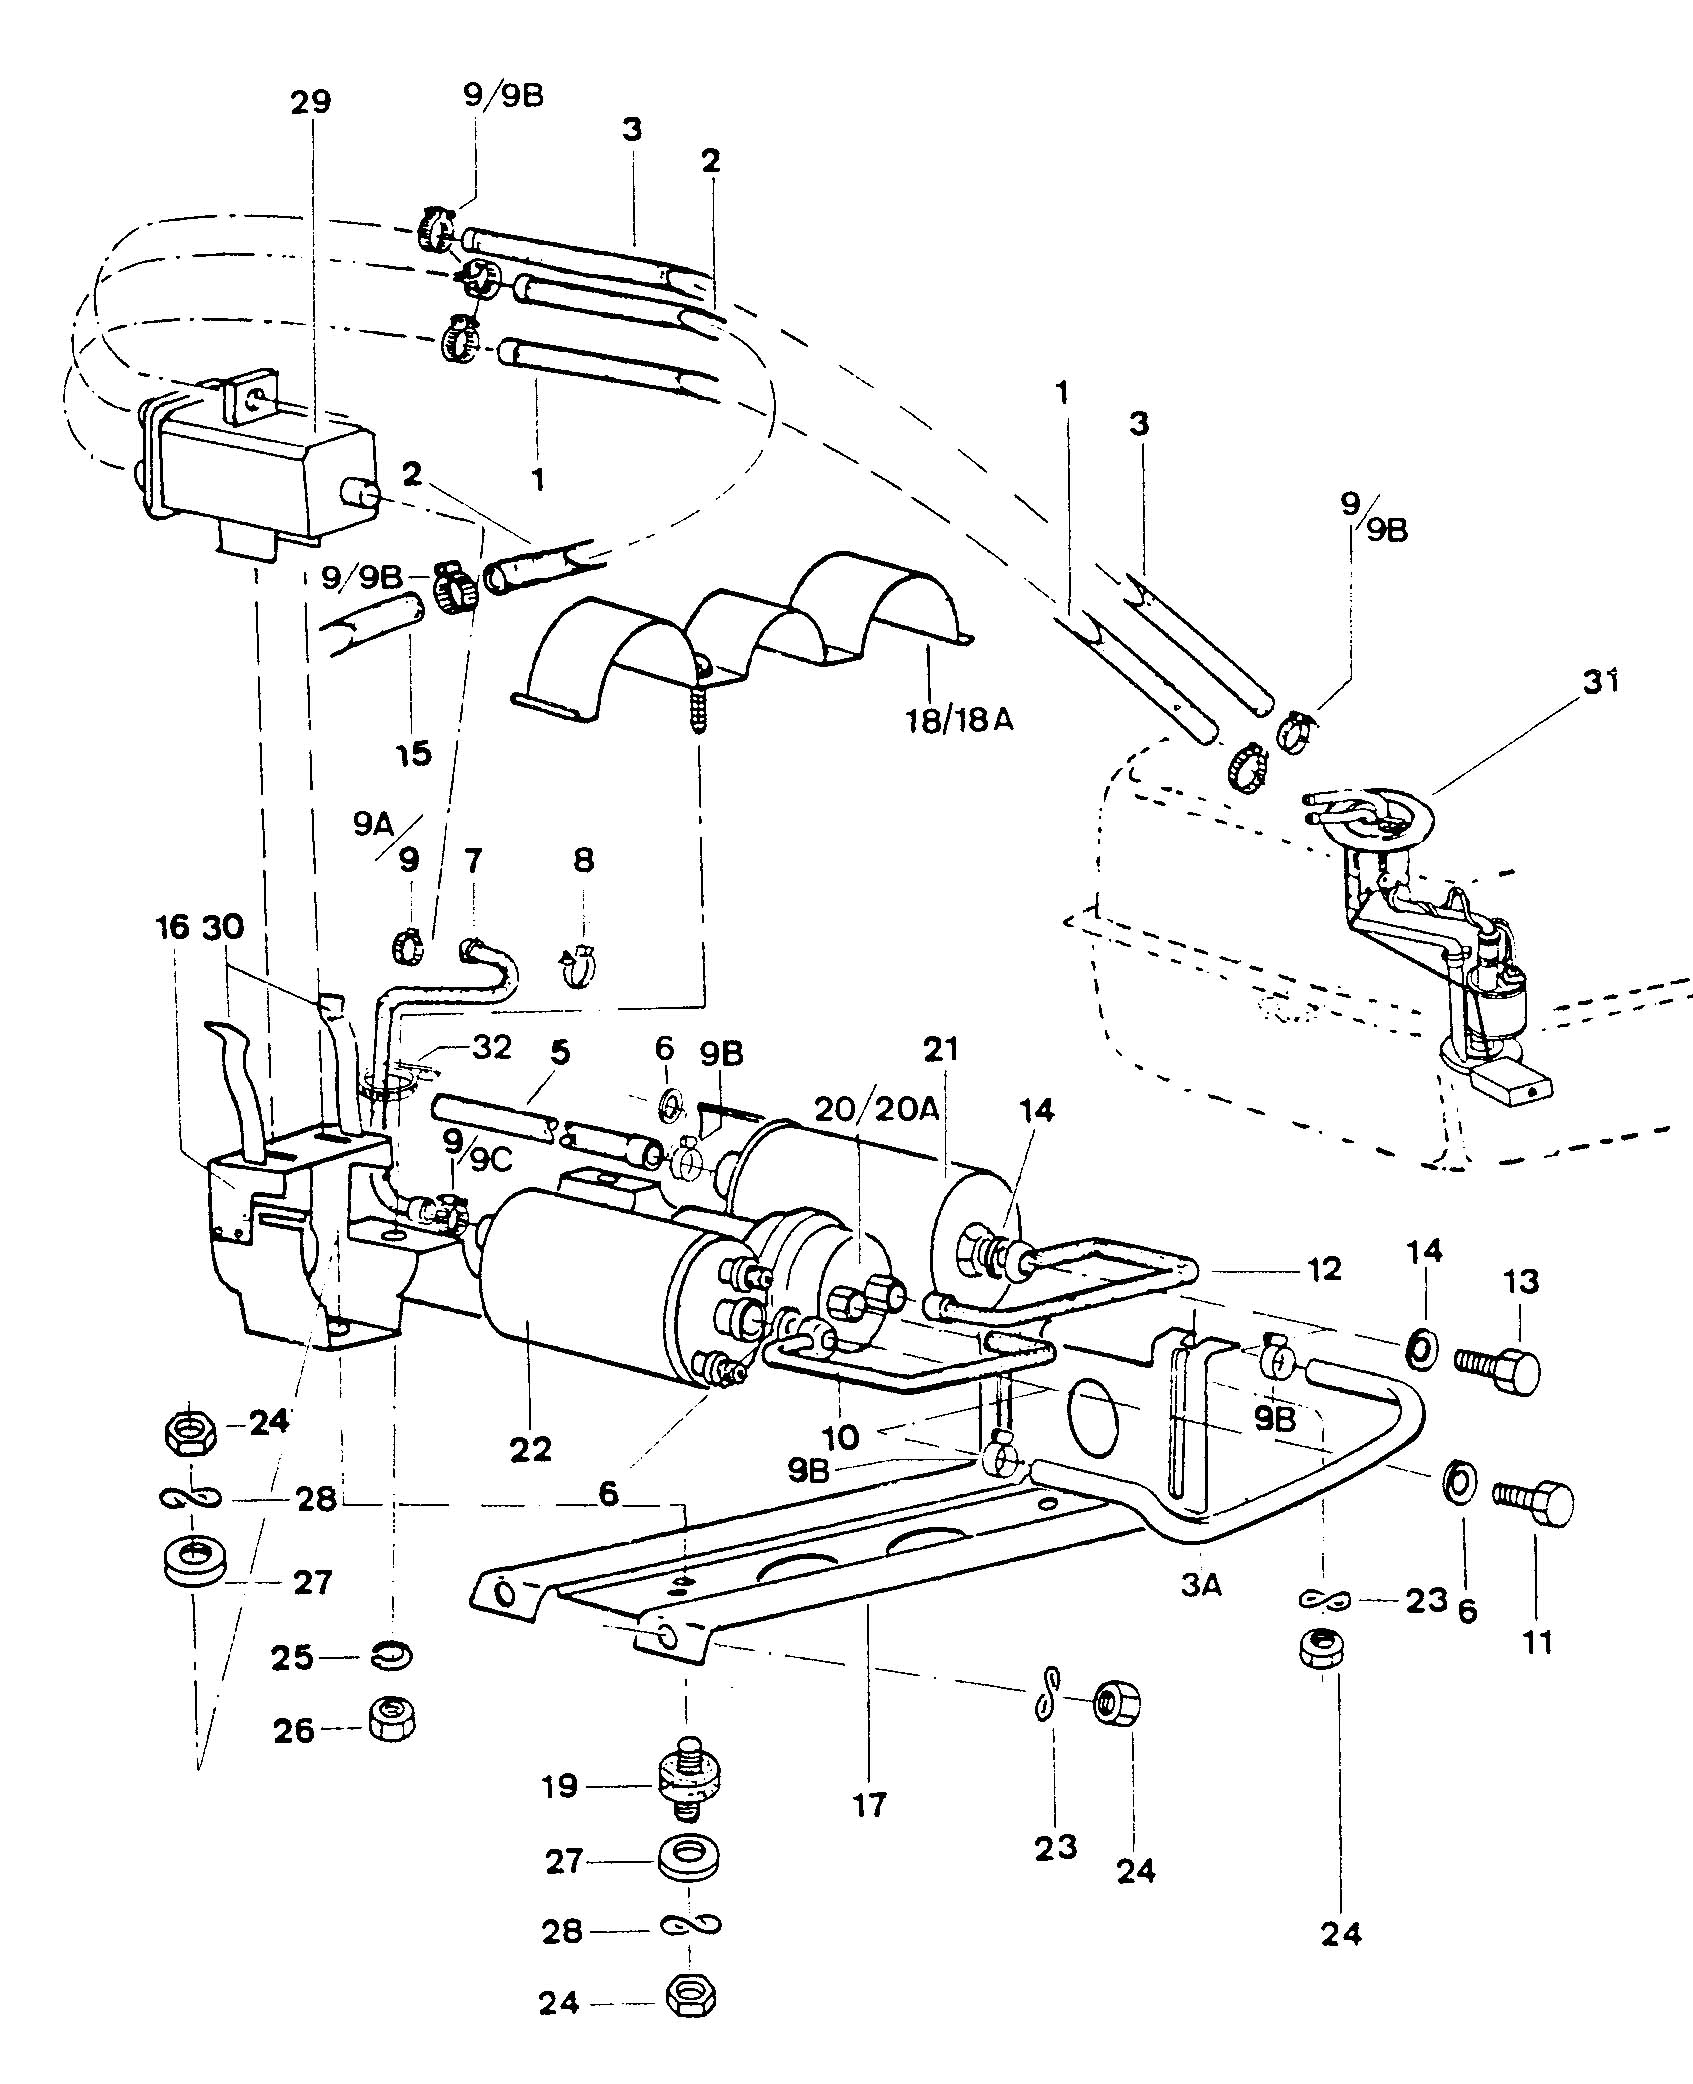 1991 Vw Cabriolet Wiring Diagram Also Vw Cabriolet Vacuum